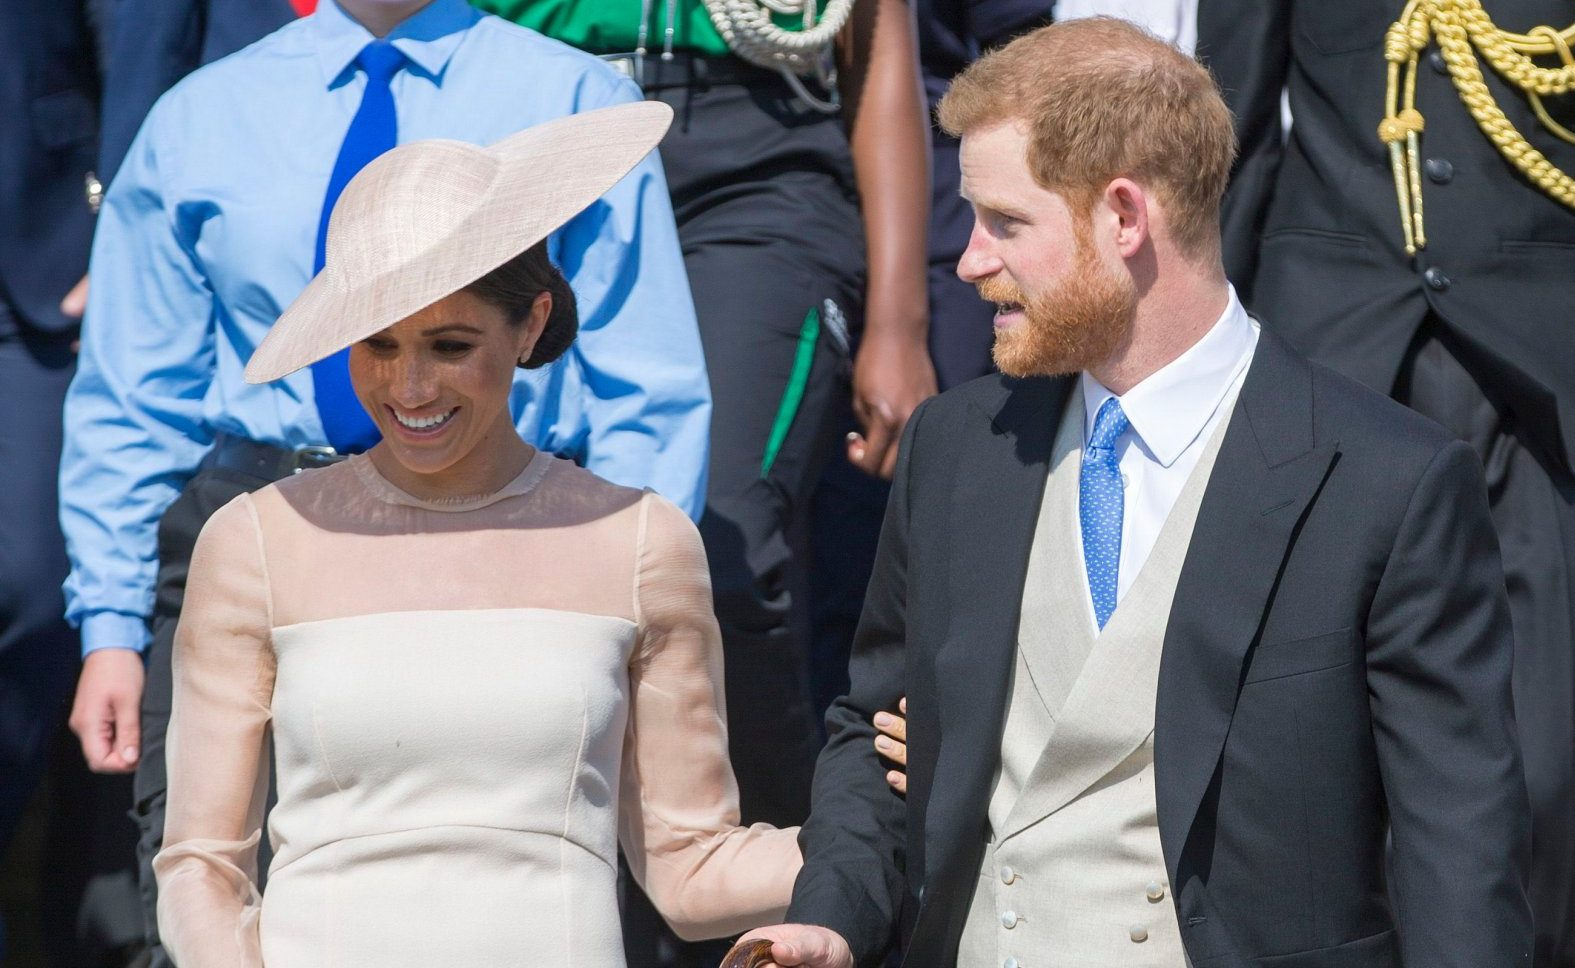 Meghan Markle and Prince Harry prepare to make Ascot debut after being invited by the Queen